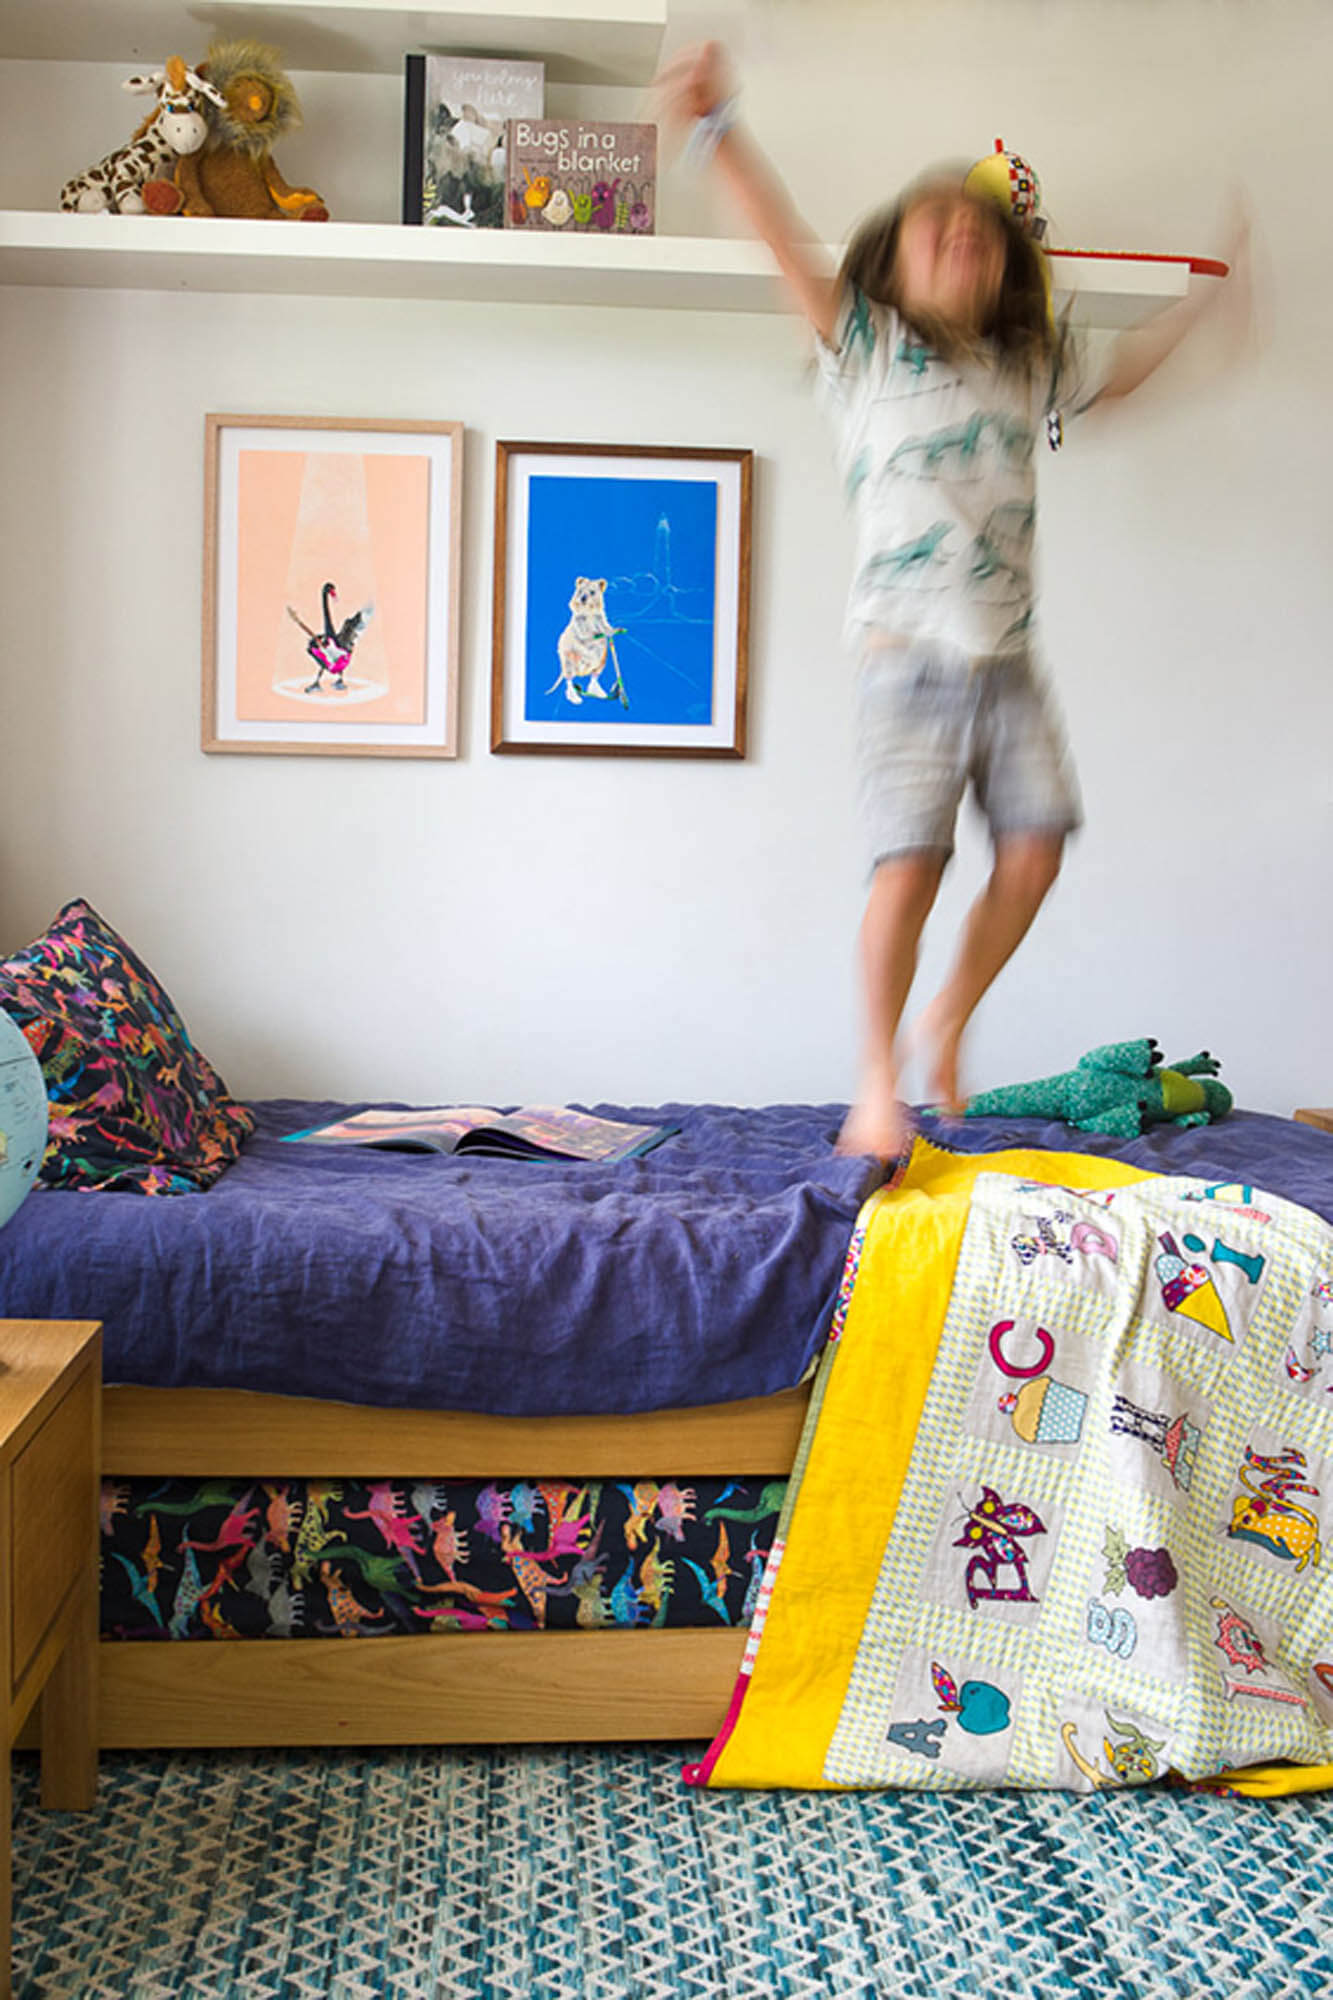 Boy jumping on bed, featuring Rottnest Island Quokka print, Bakery Run.